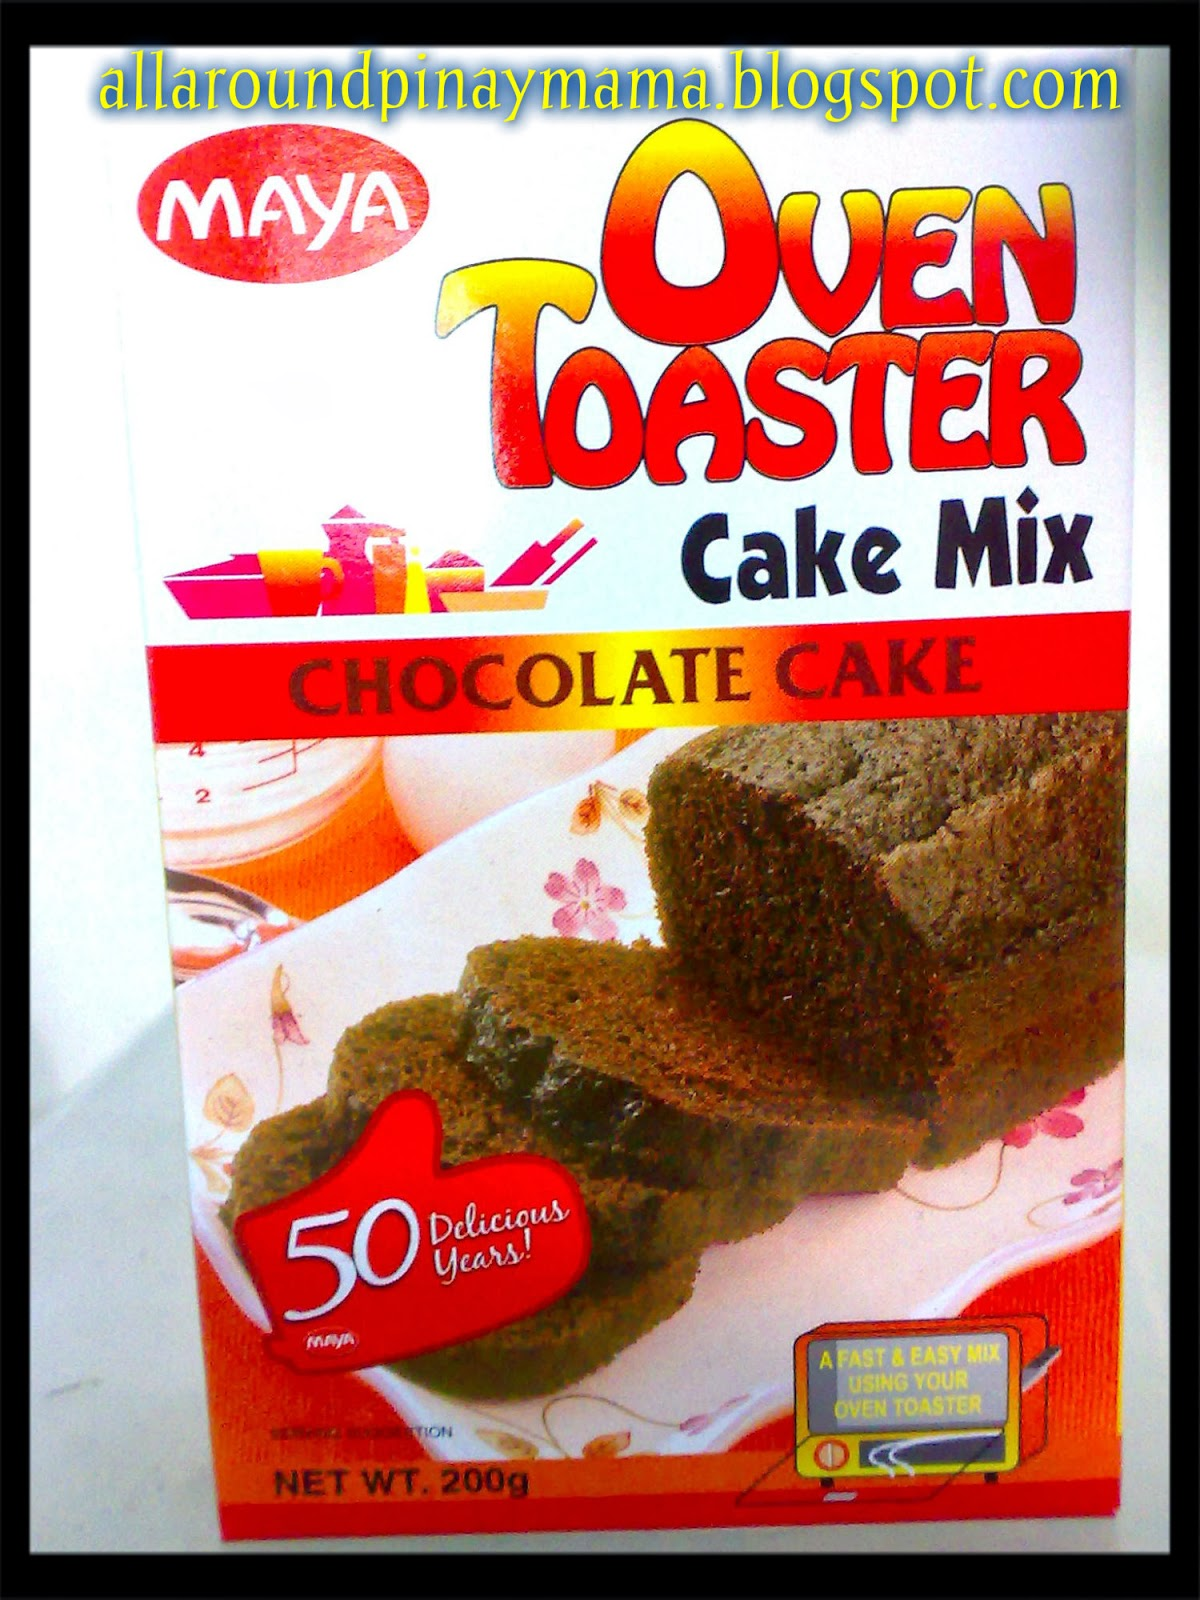 Chocolate Surprise Cake Using Maya Oven Toaster Cake Mix Chocolate Cake